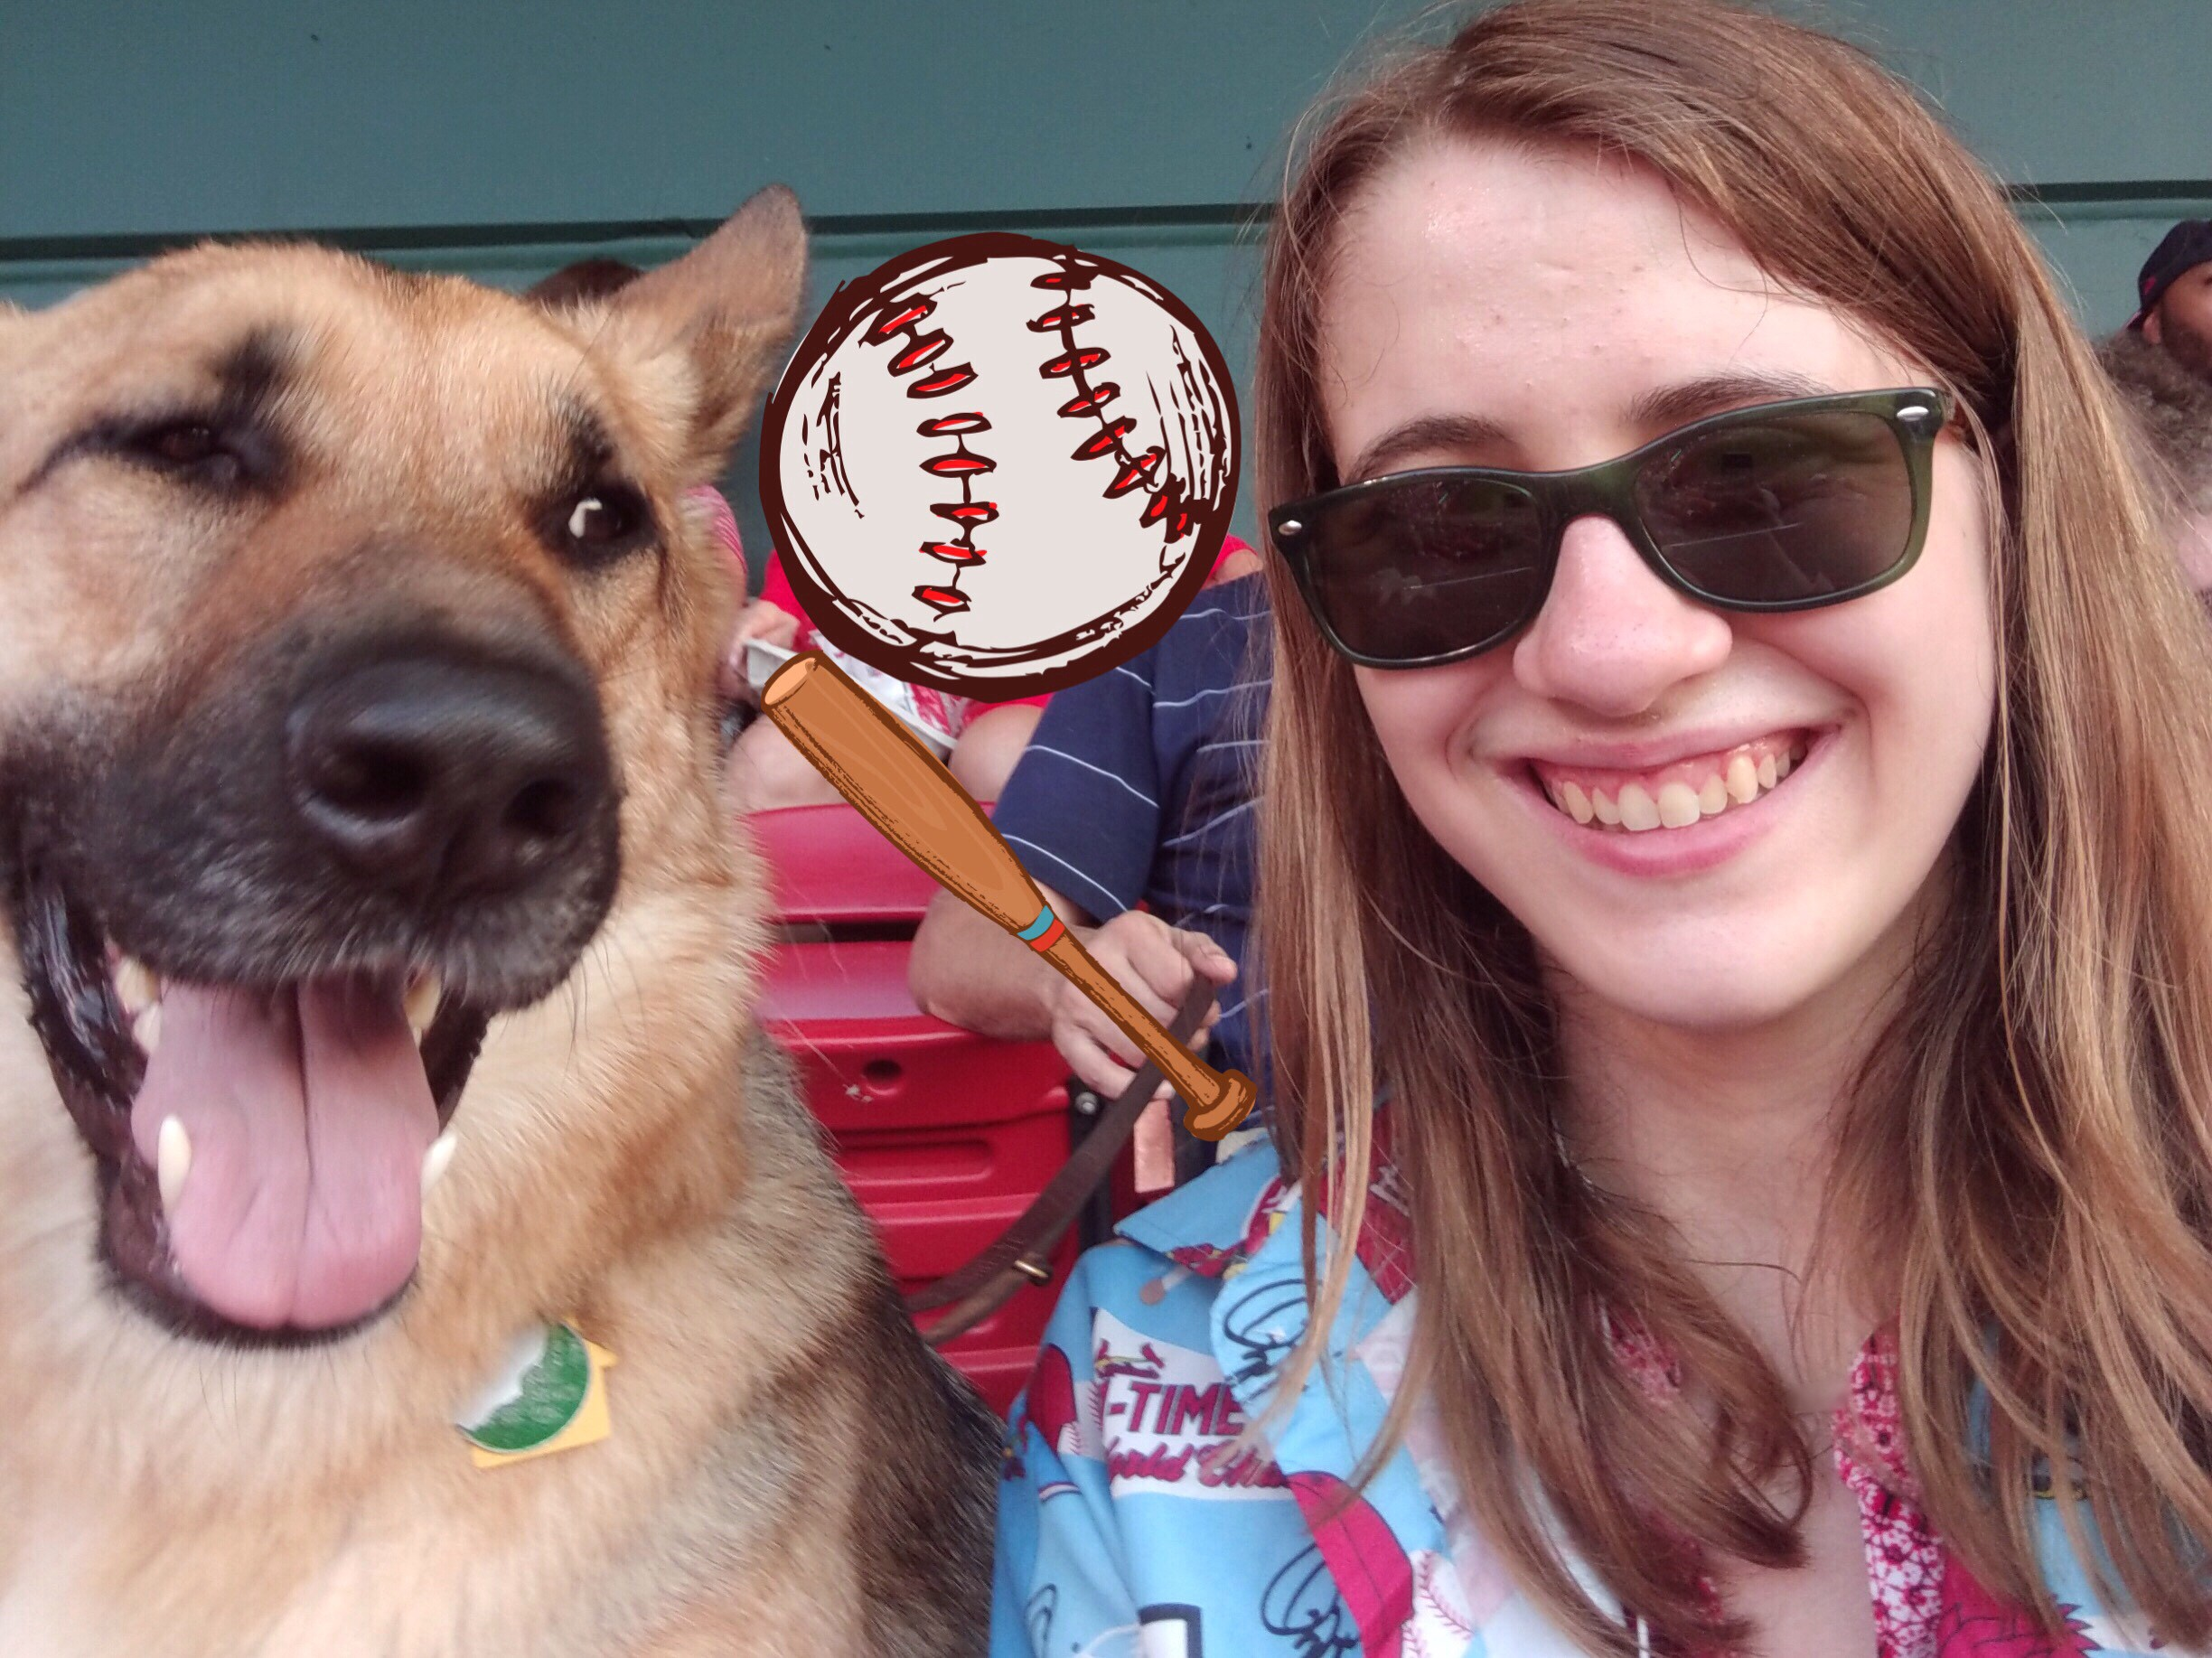 Photo of Veronica and a German Shepherd sitting in the stands with an added cartoon baseball bat and ball.